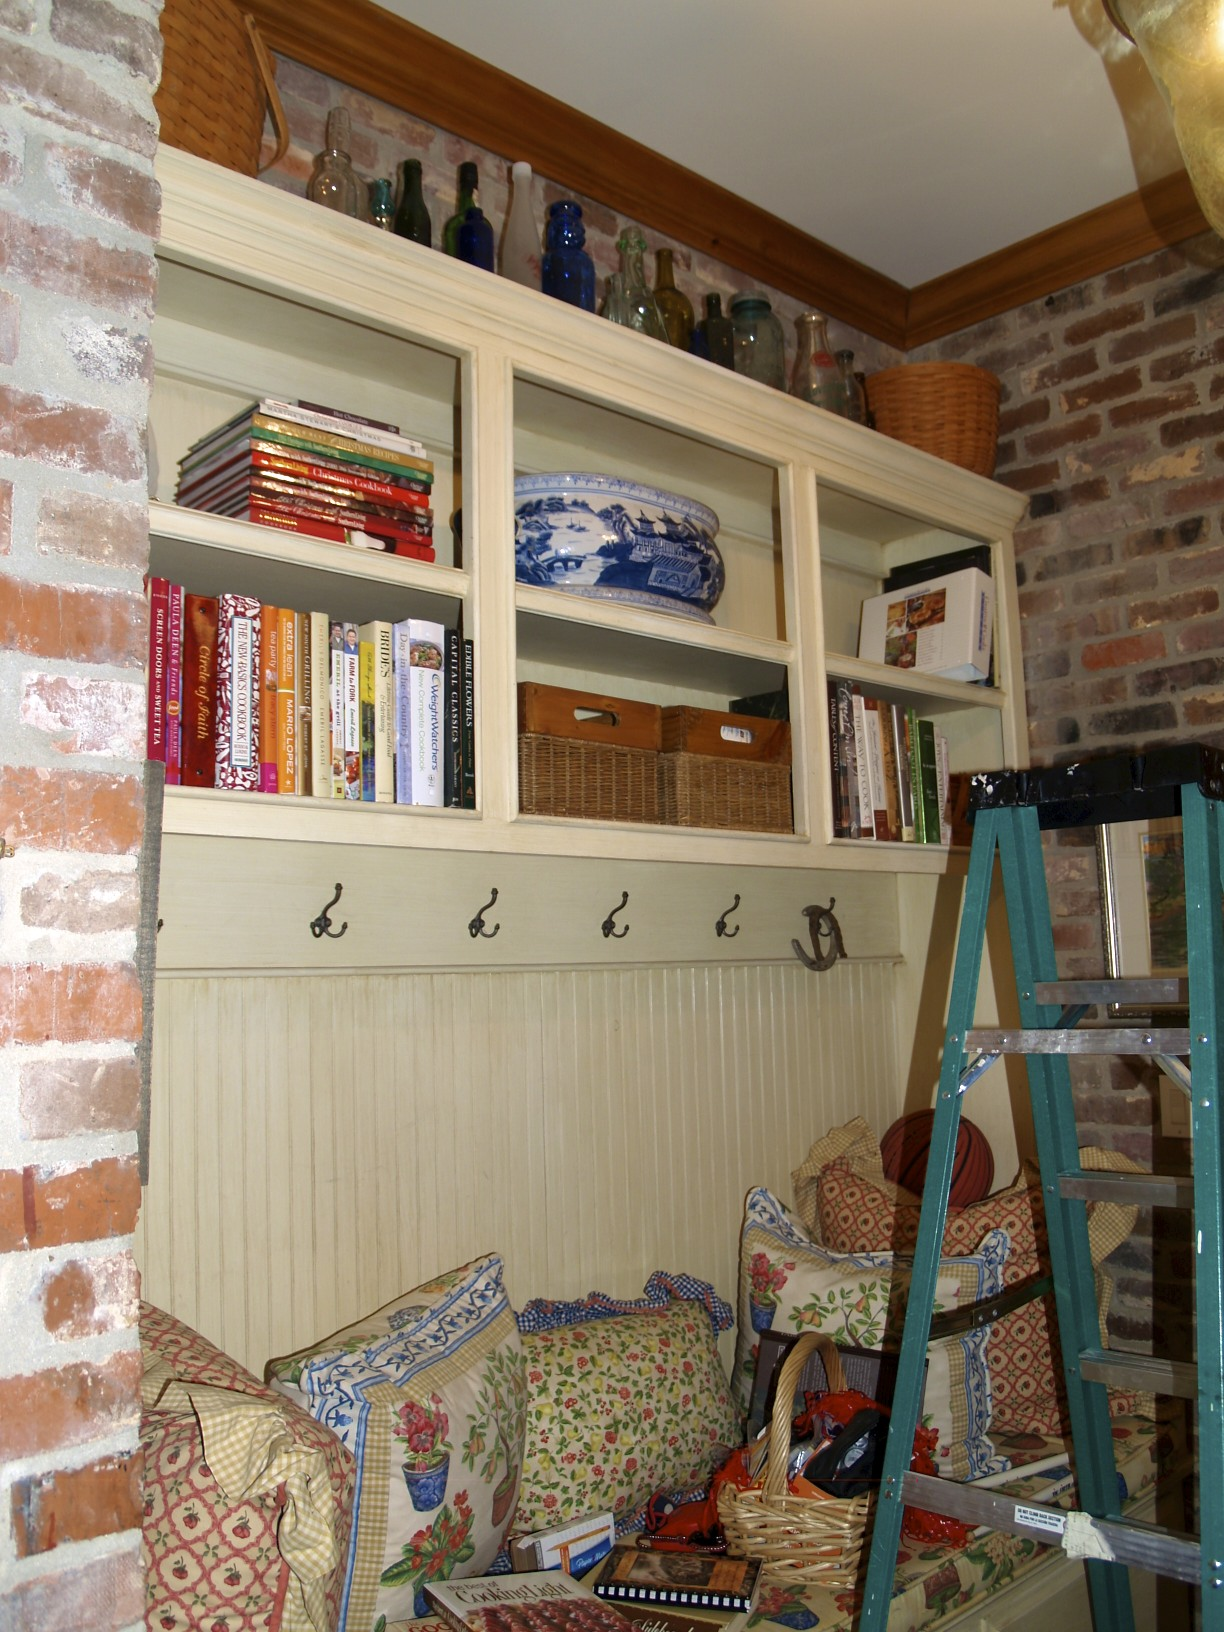 shelving for cookbooks